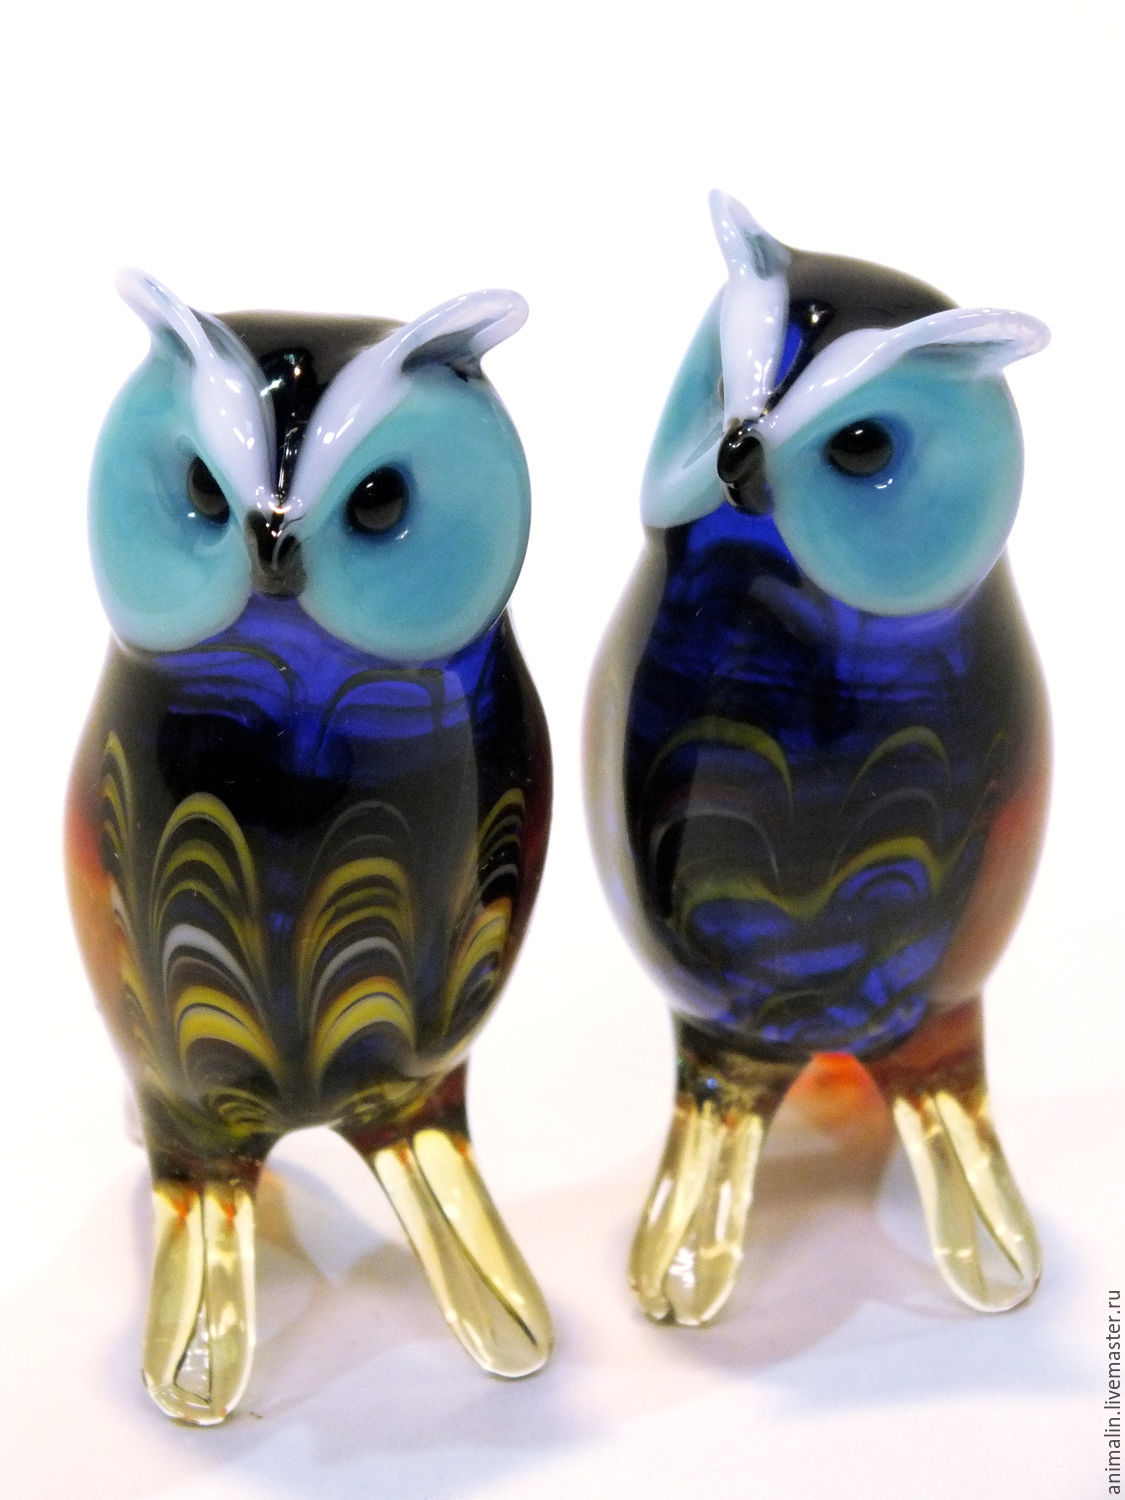 Decorative figurine made of colored glass Owl Ulula, Figurines, Moscow,  Фото №1